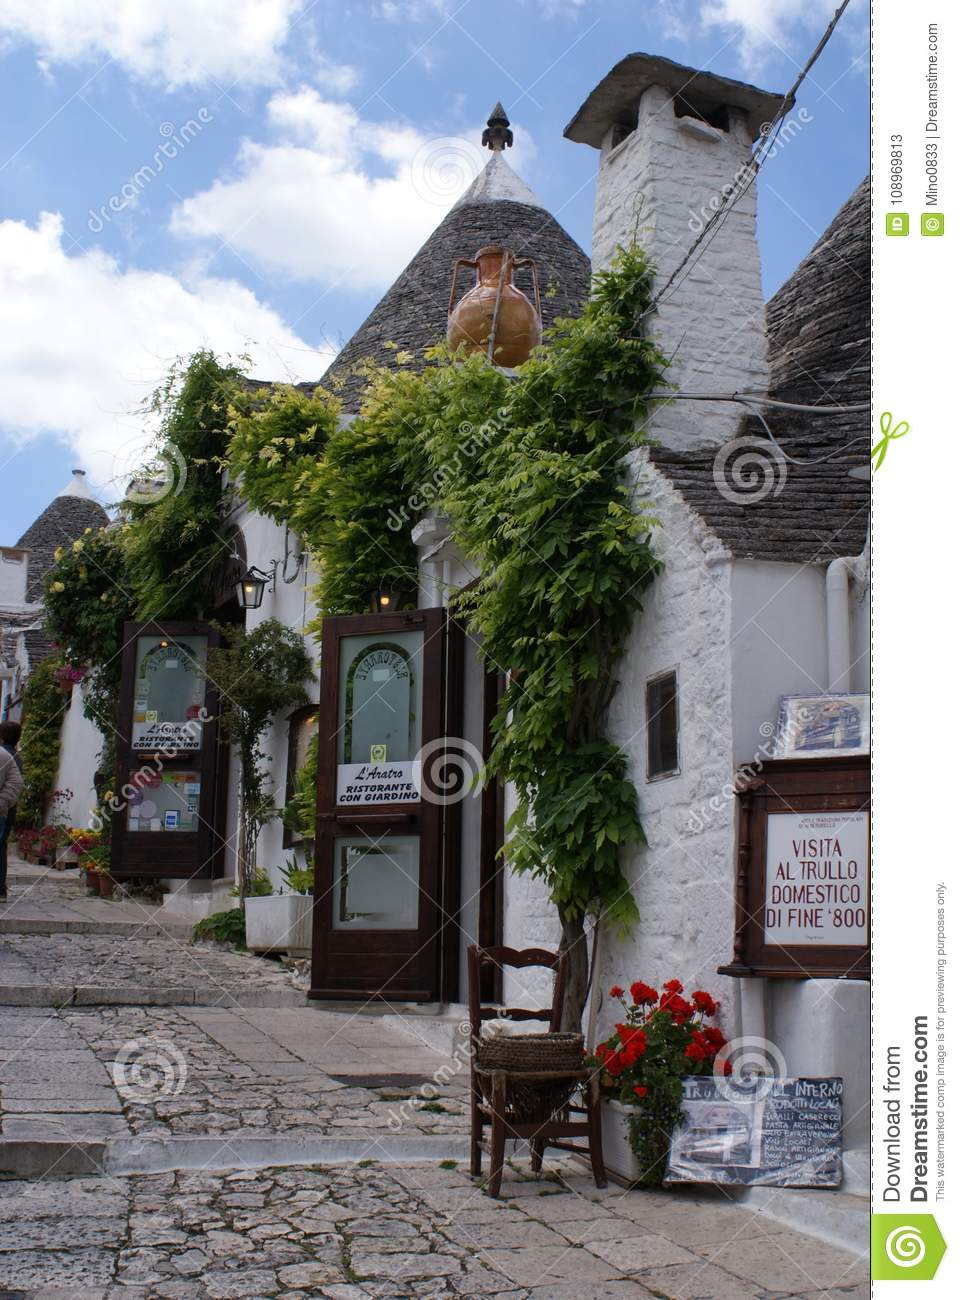 Ristoranti Alberobello The Trulli Of Alberobello Editorial Stock Photo Image Of